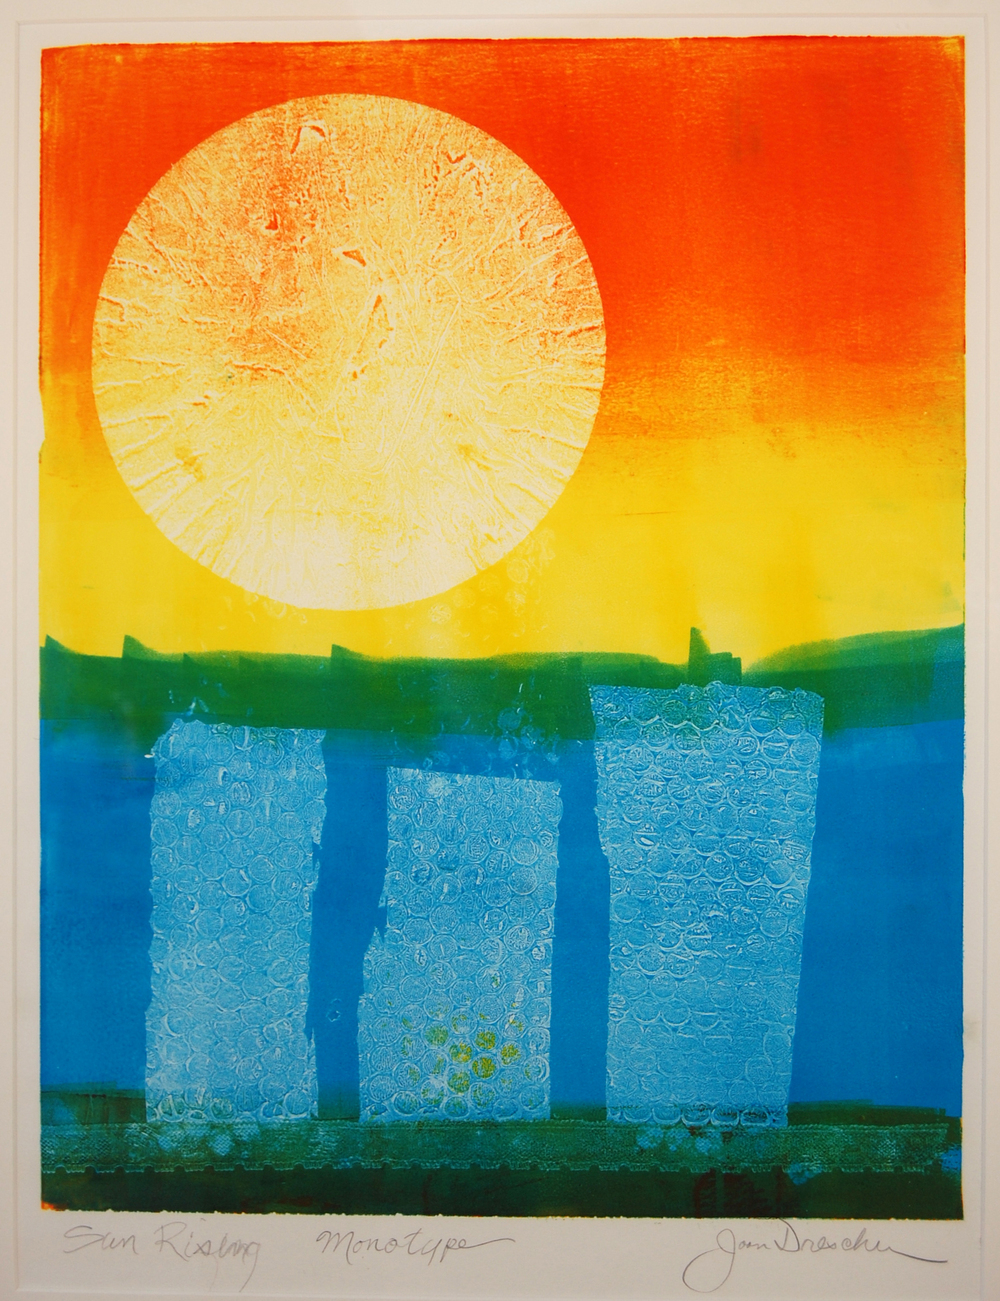 Sun Rising, Monotype (on cover of ISSUE 02)